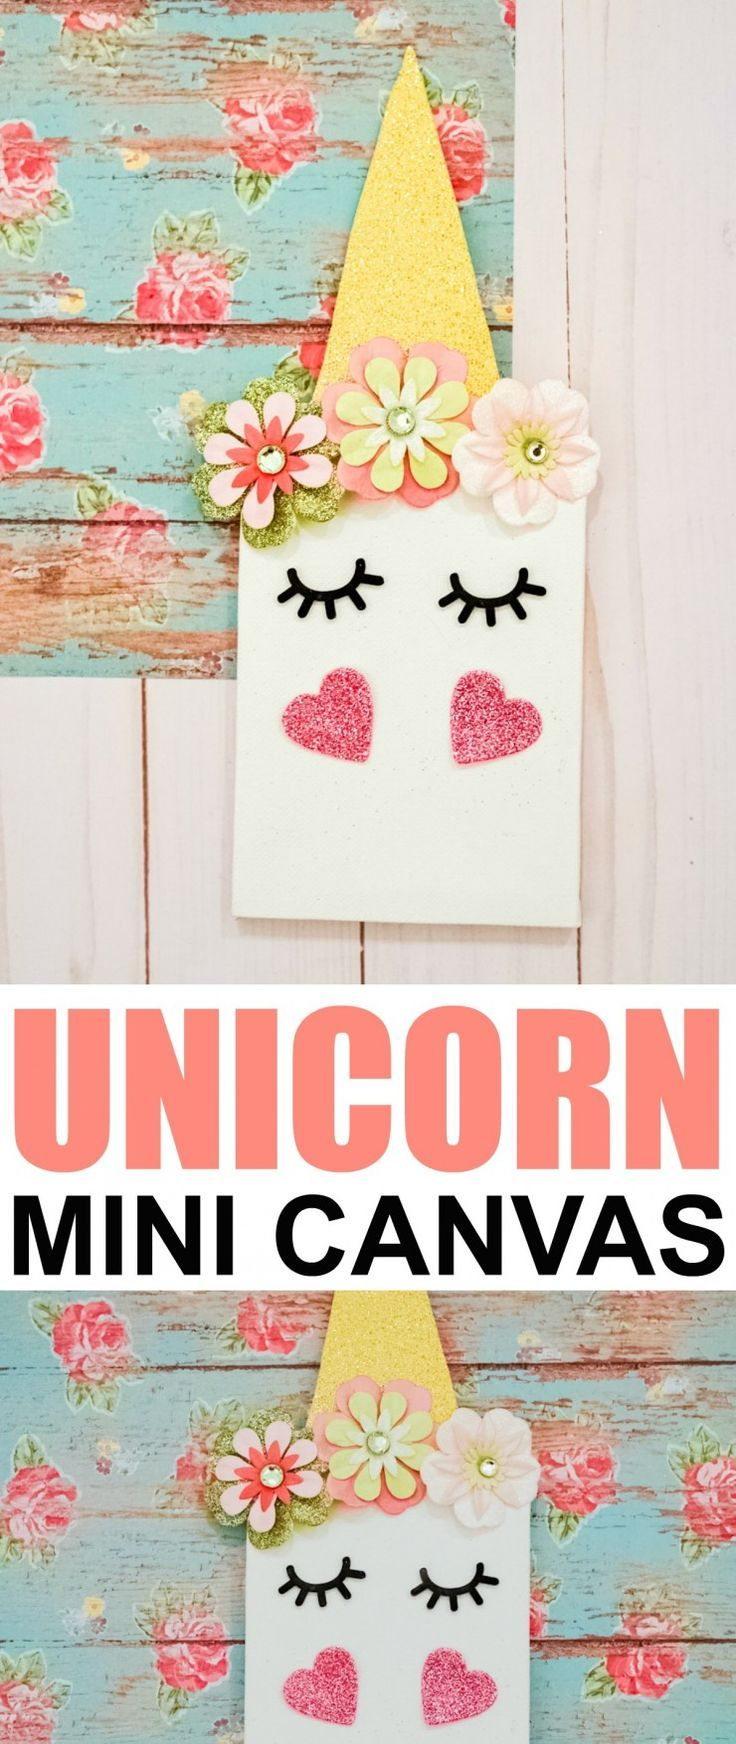 DIY Unicorn Mini Canvas Crafts, Arts and crafts for kids